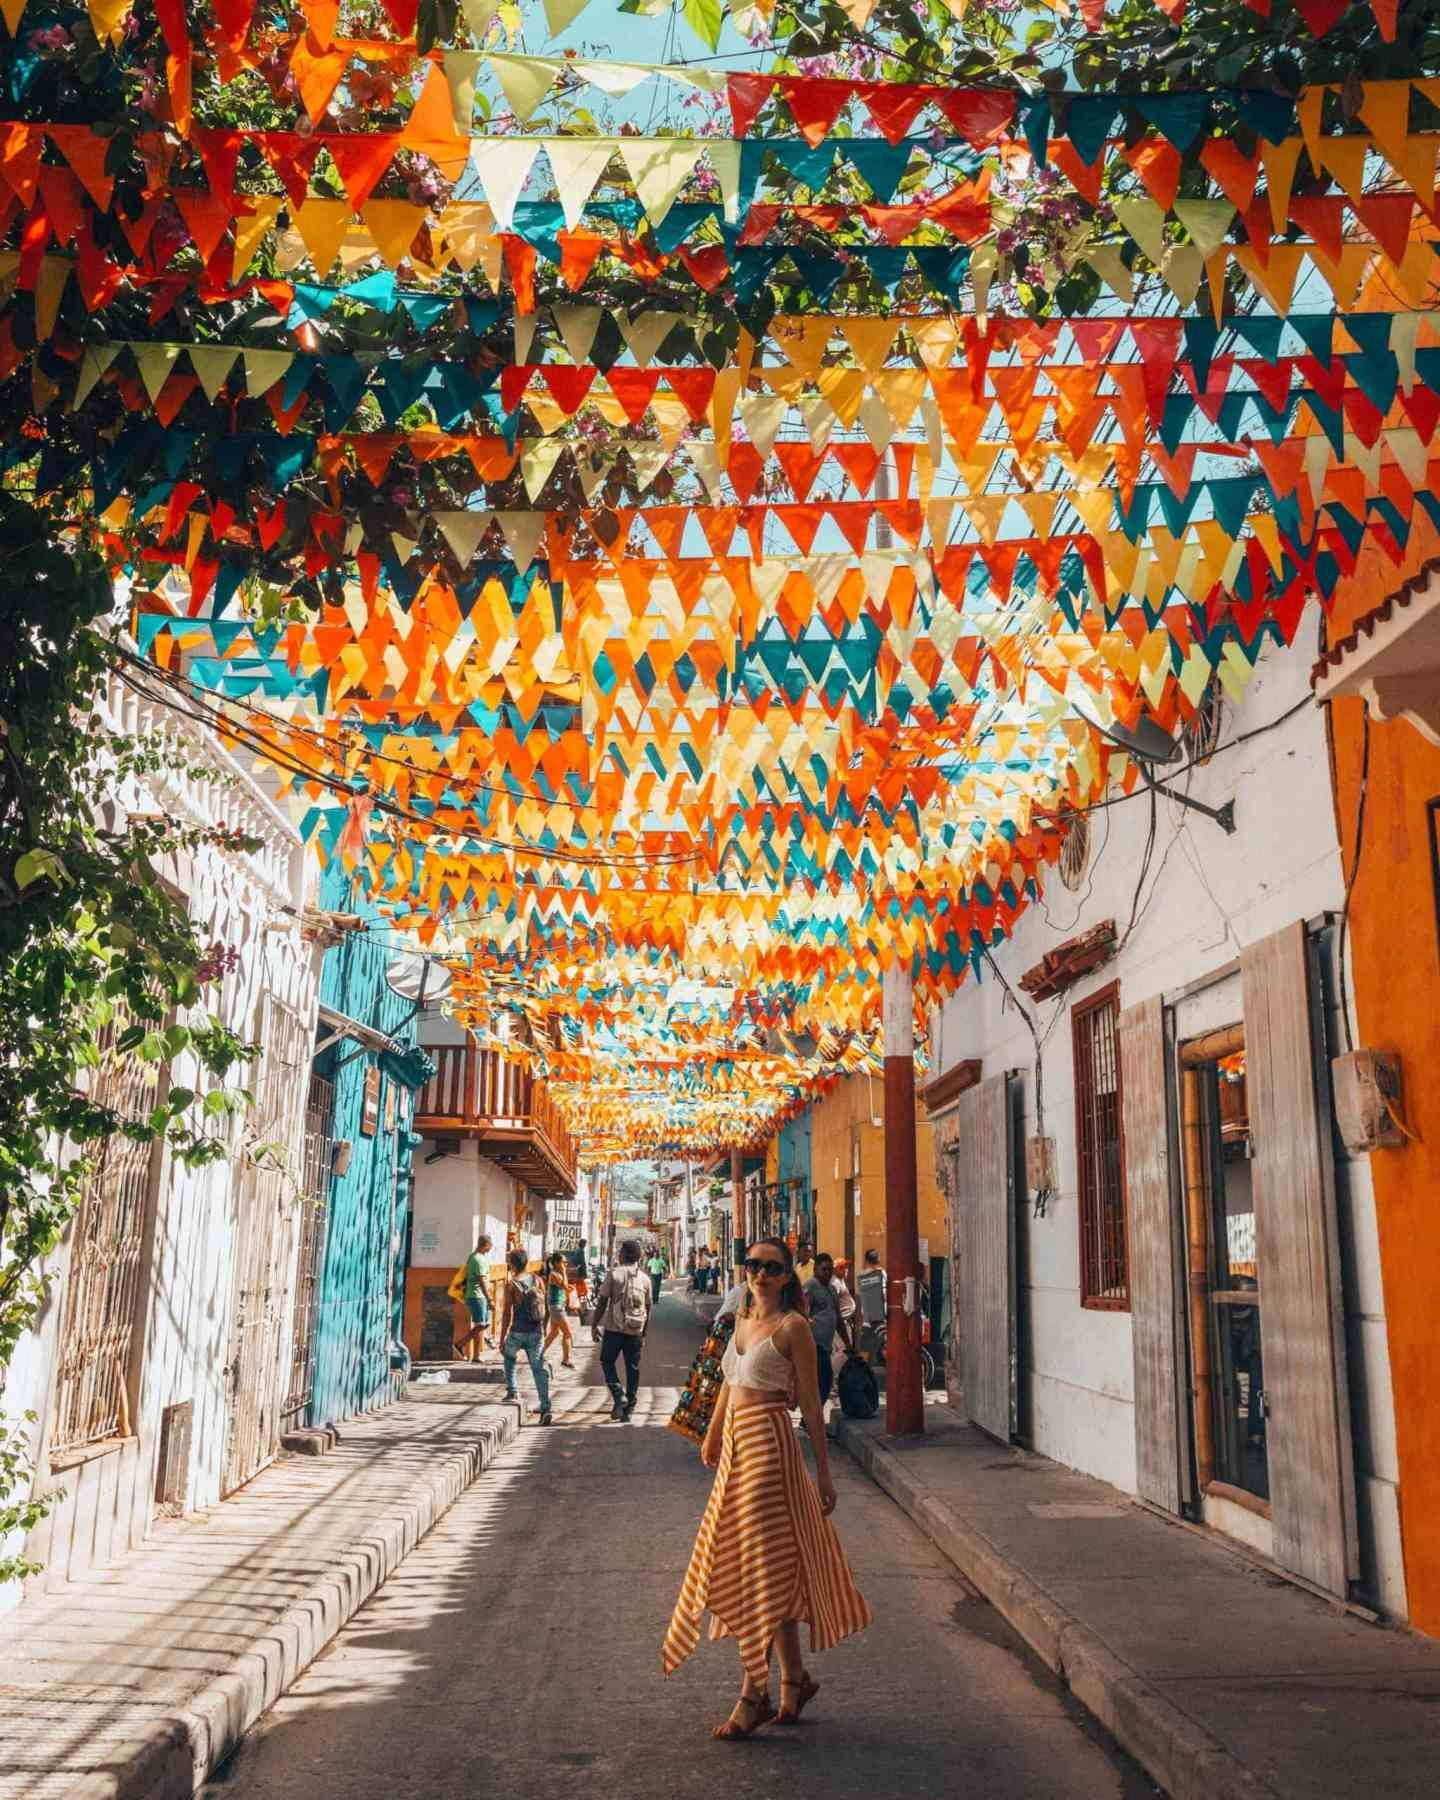 Things To Do In Getsemani Cartagena Trip To Colombia Cartagena Colorful Places